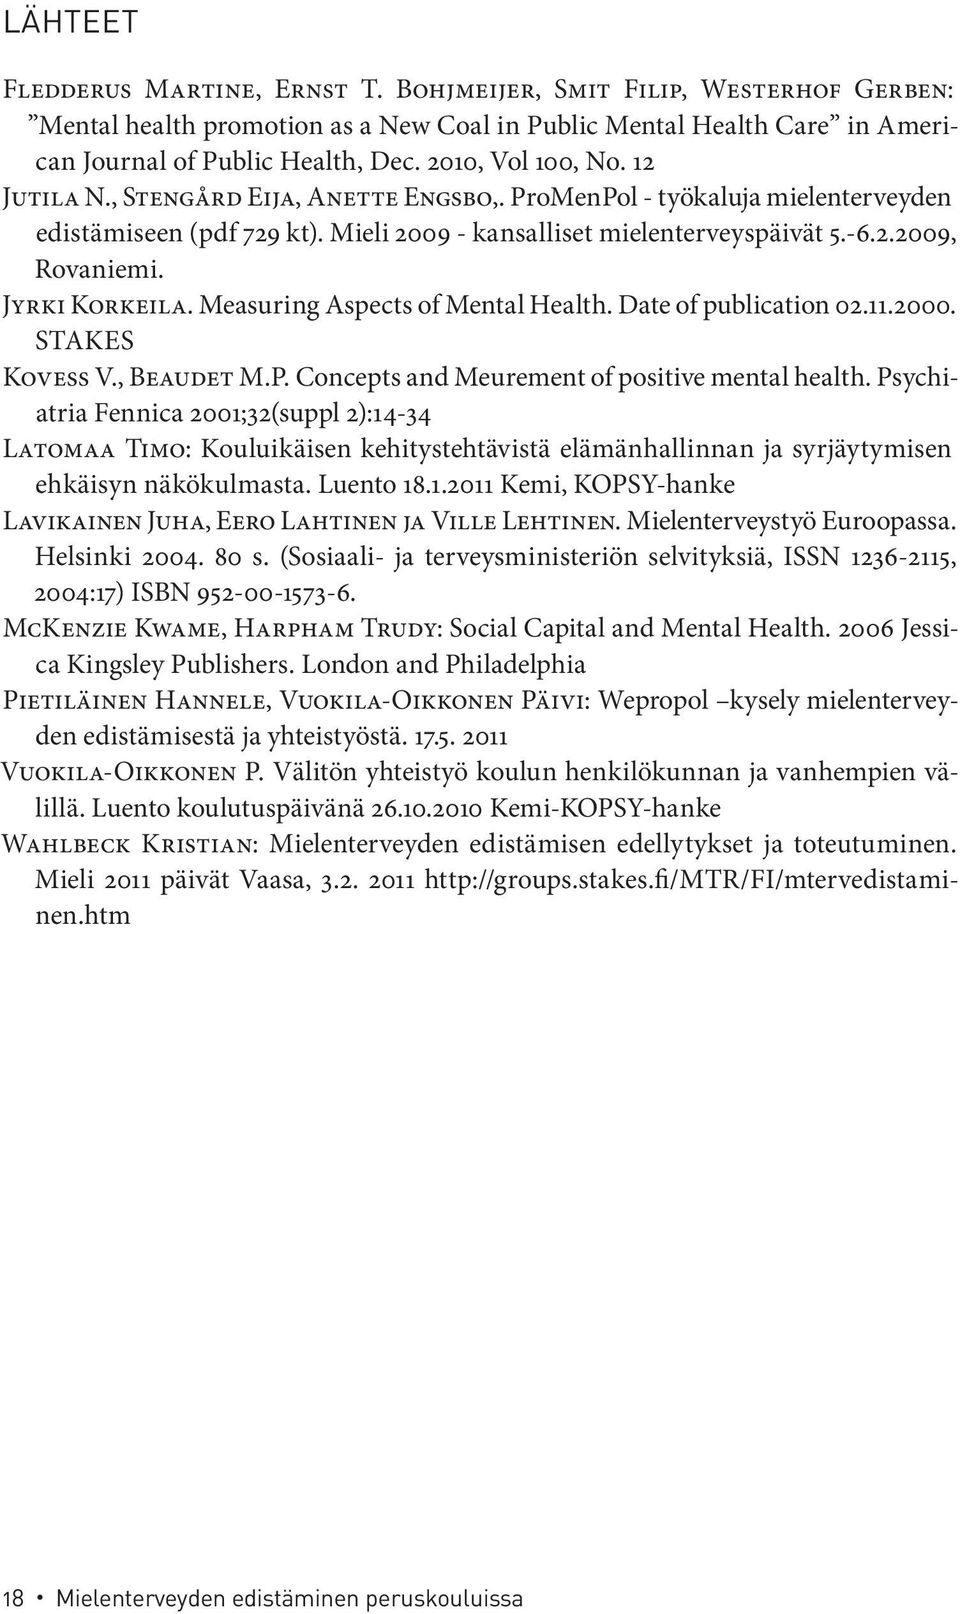 Jyrki Korkeila. Measuring Aspects of Mental Health. Date of publication 02.11.2000. STAKES Kovess V., Beaudet M.P. Concepts and Meurement of positive mental health.